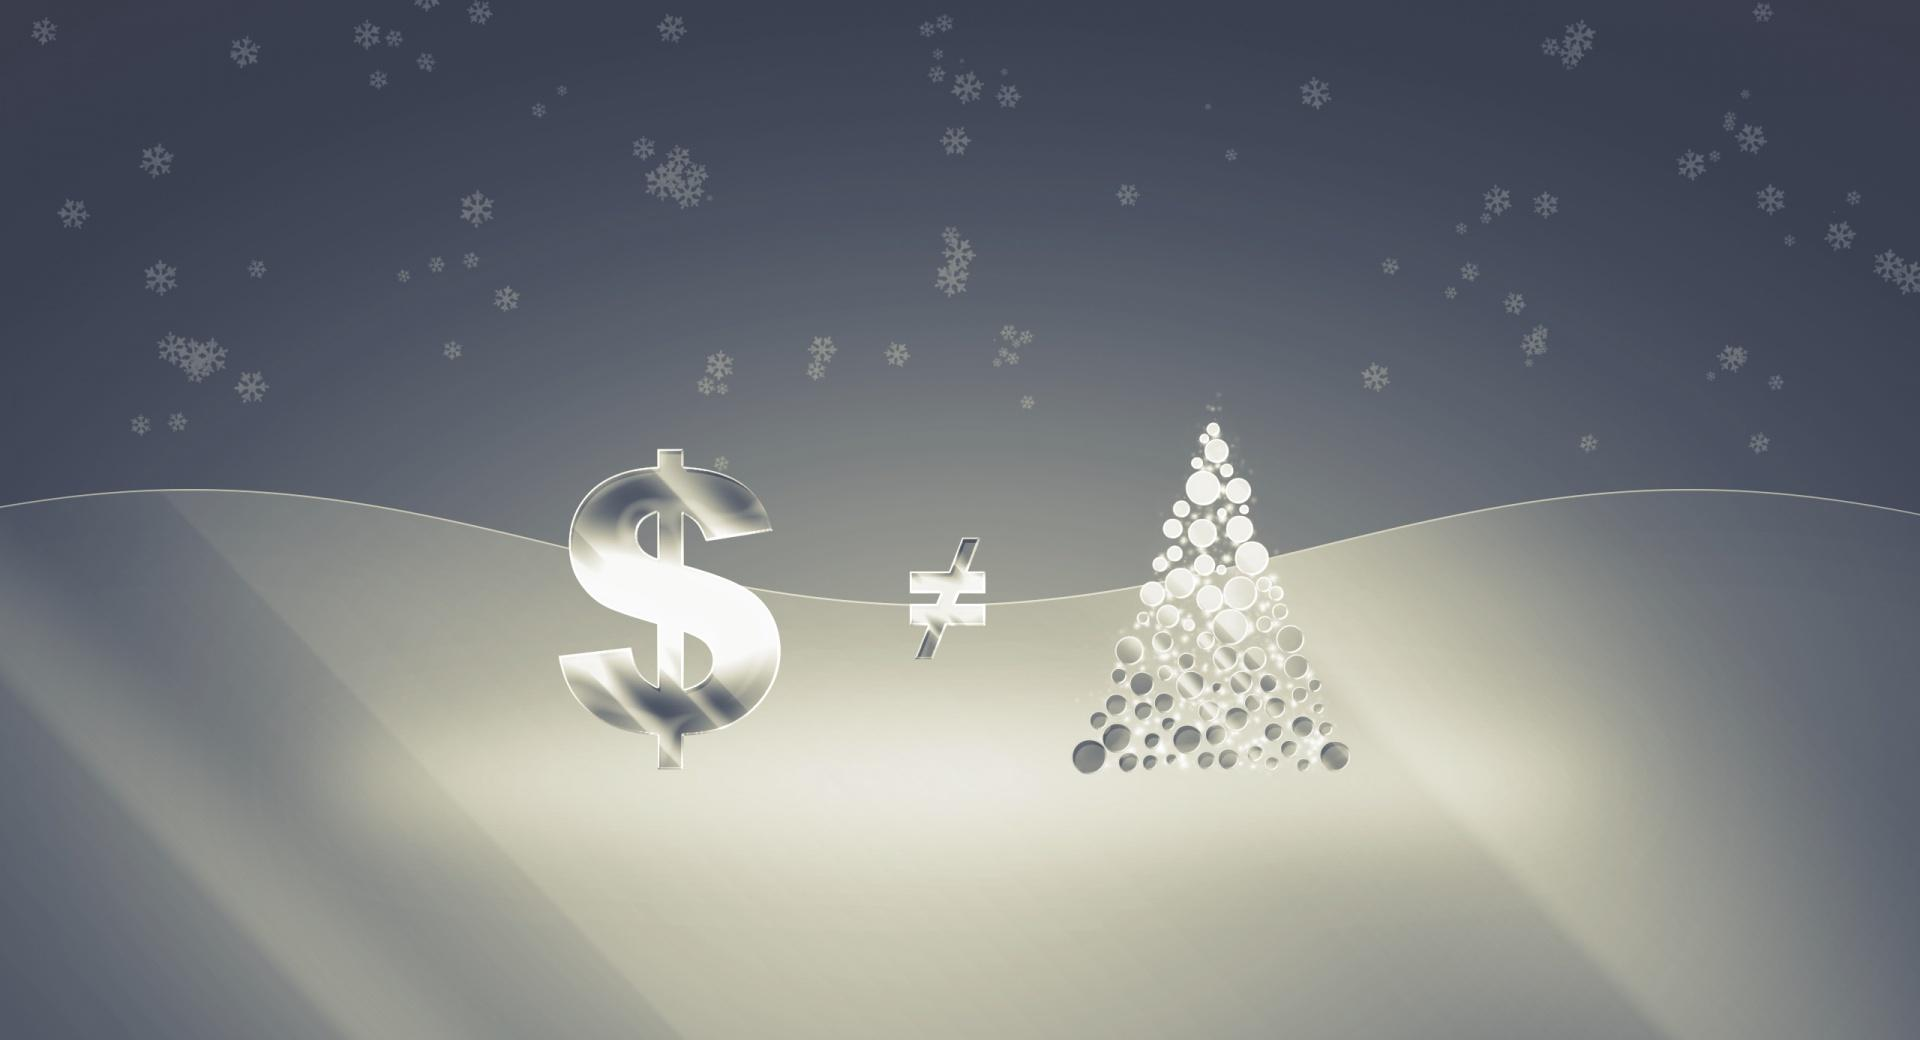 Money Isnt Christmas wallpapers HD quality